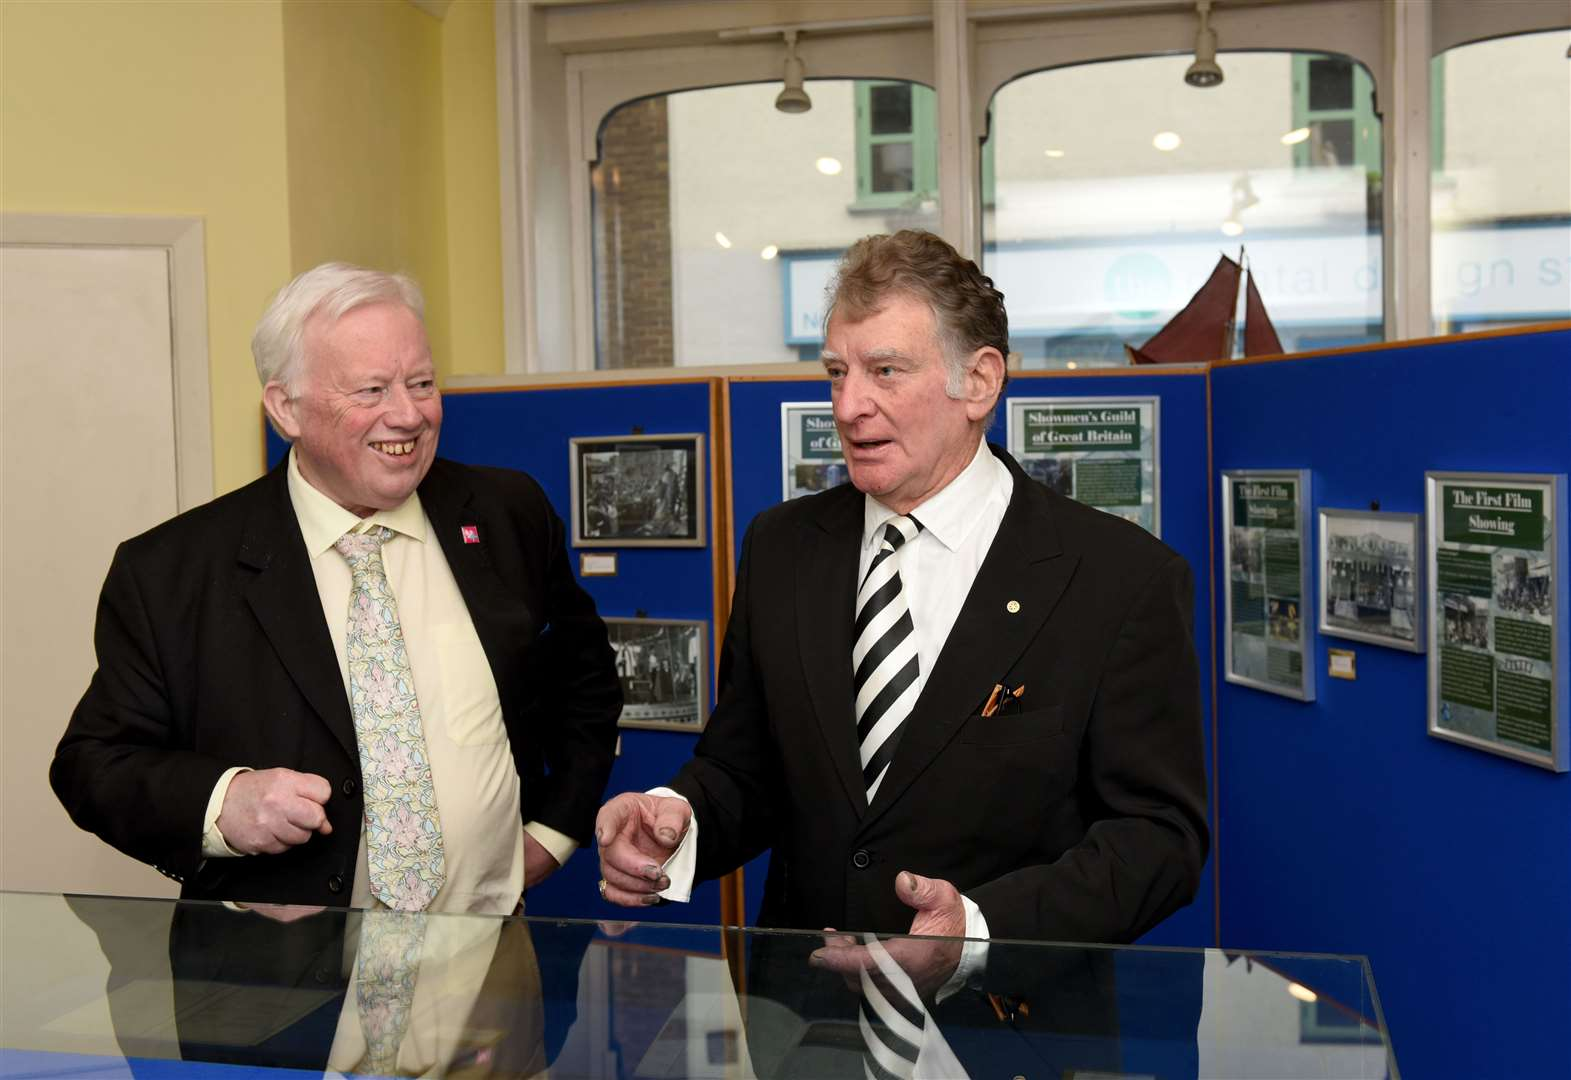 Dr Paul Richards, left, and Nipper Appleton at the opening ceremony of an exhibition on the King's Lynn Mart at True's Yard Fisherfolk Museum in 2019.